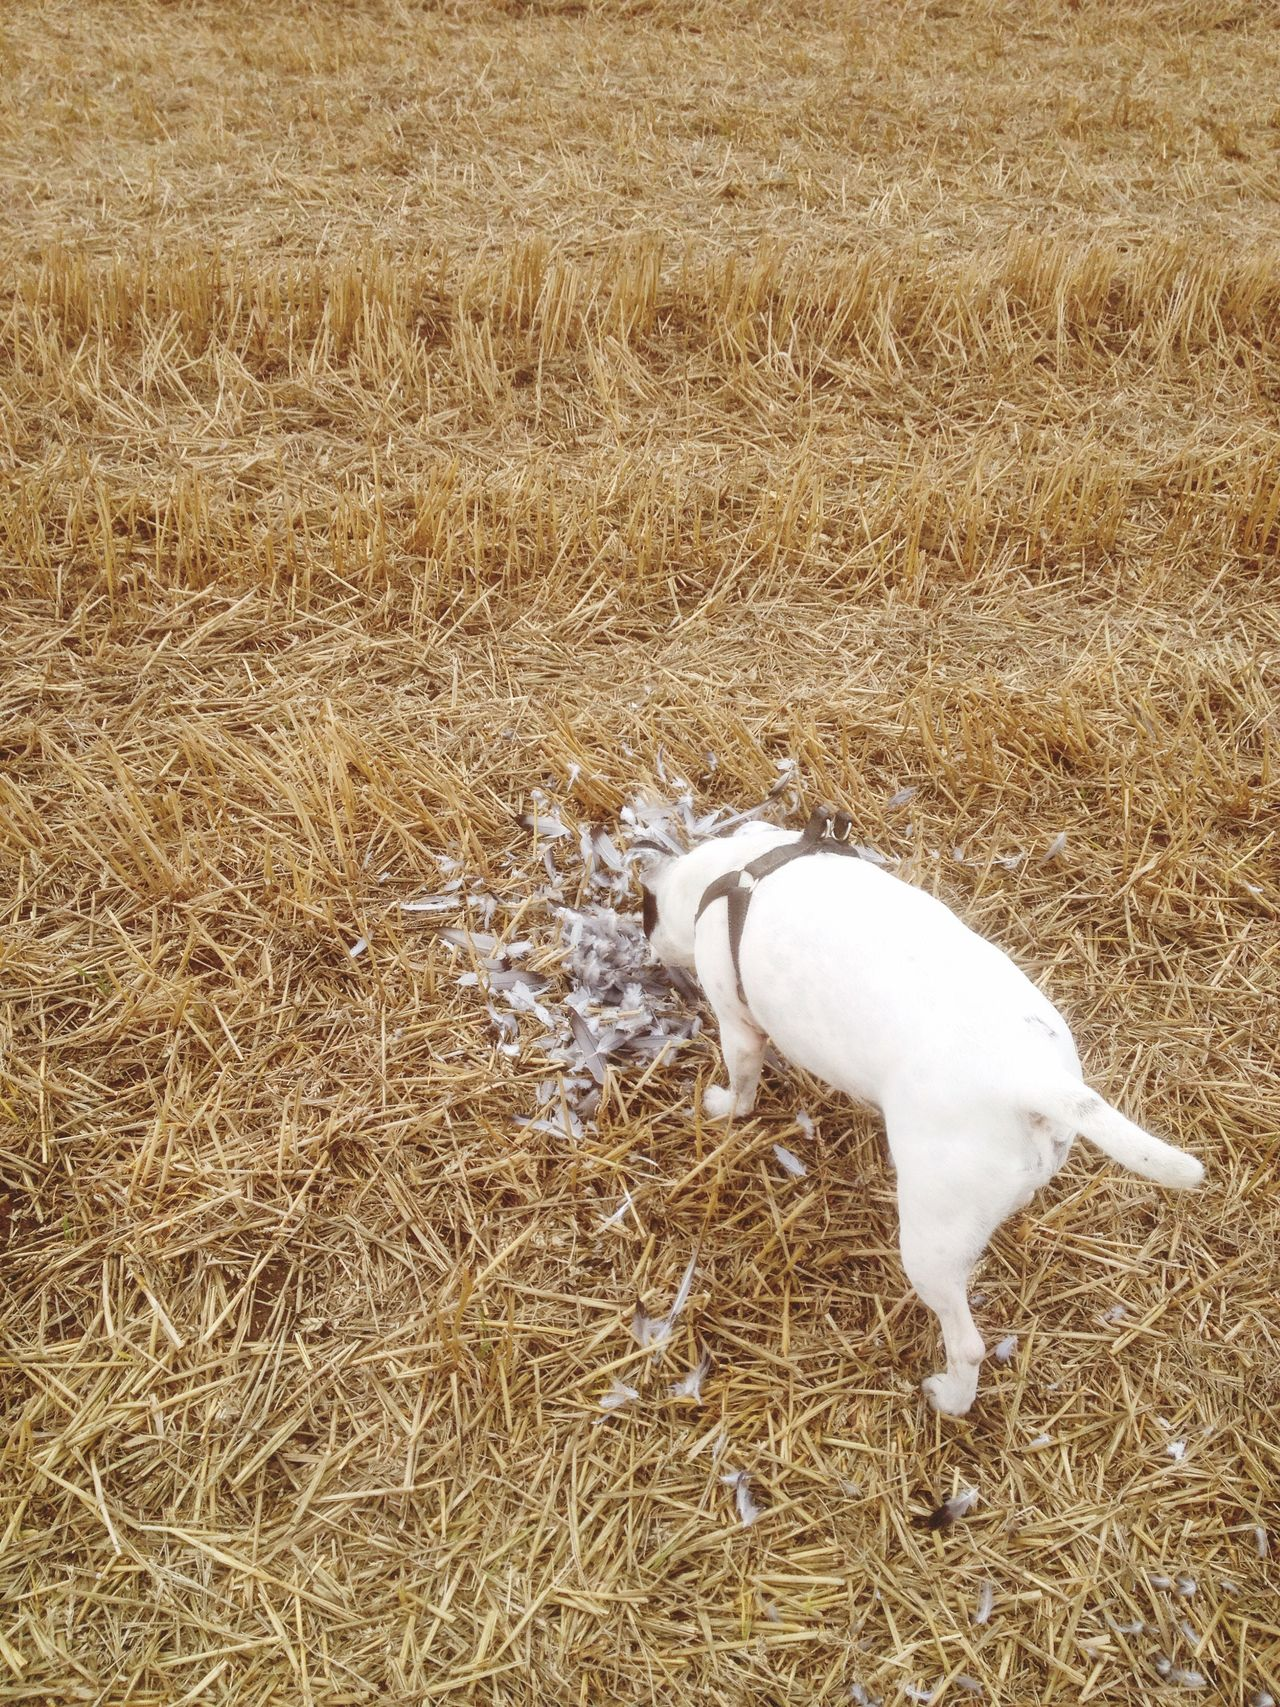 My dog in the wheatfield after harvest checking out the scene where the bird of prey killed it's pigeon dinner mother nature is red in tooth and claw Bird Of Prey Nature Red In Tooth And Claw Predator Countryside